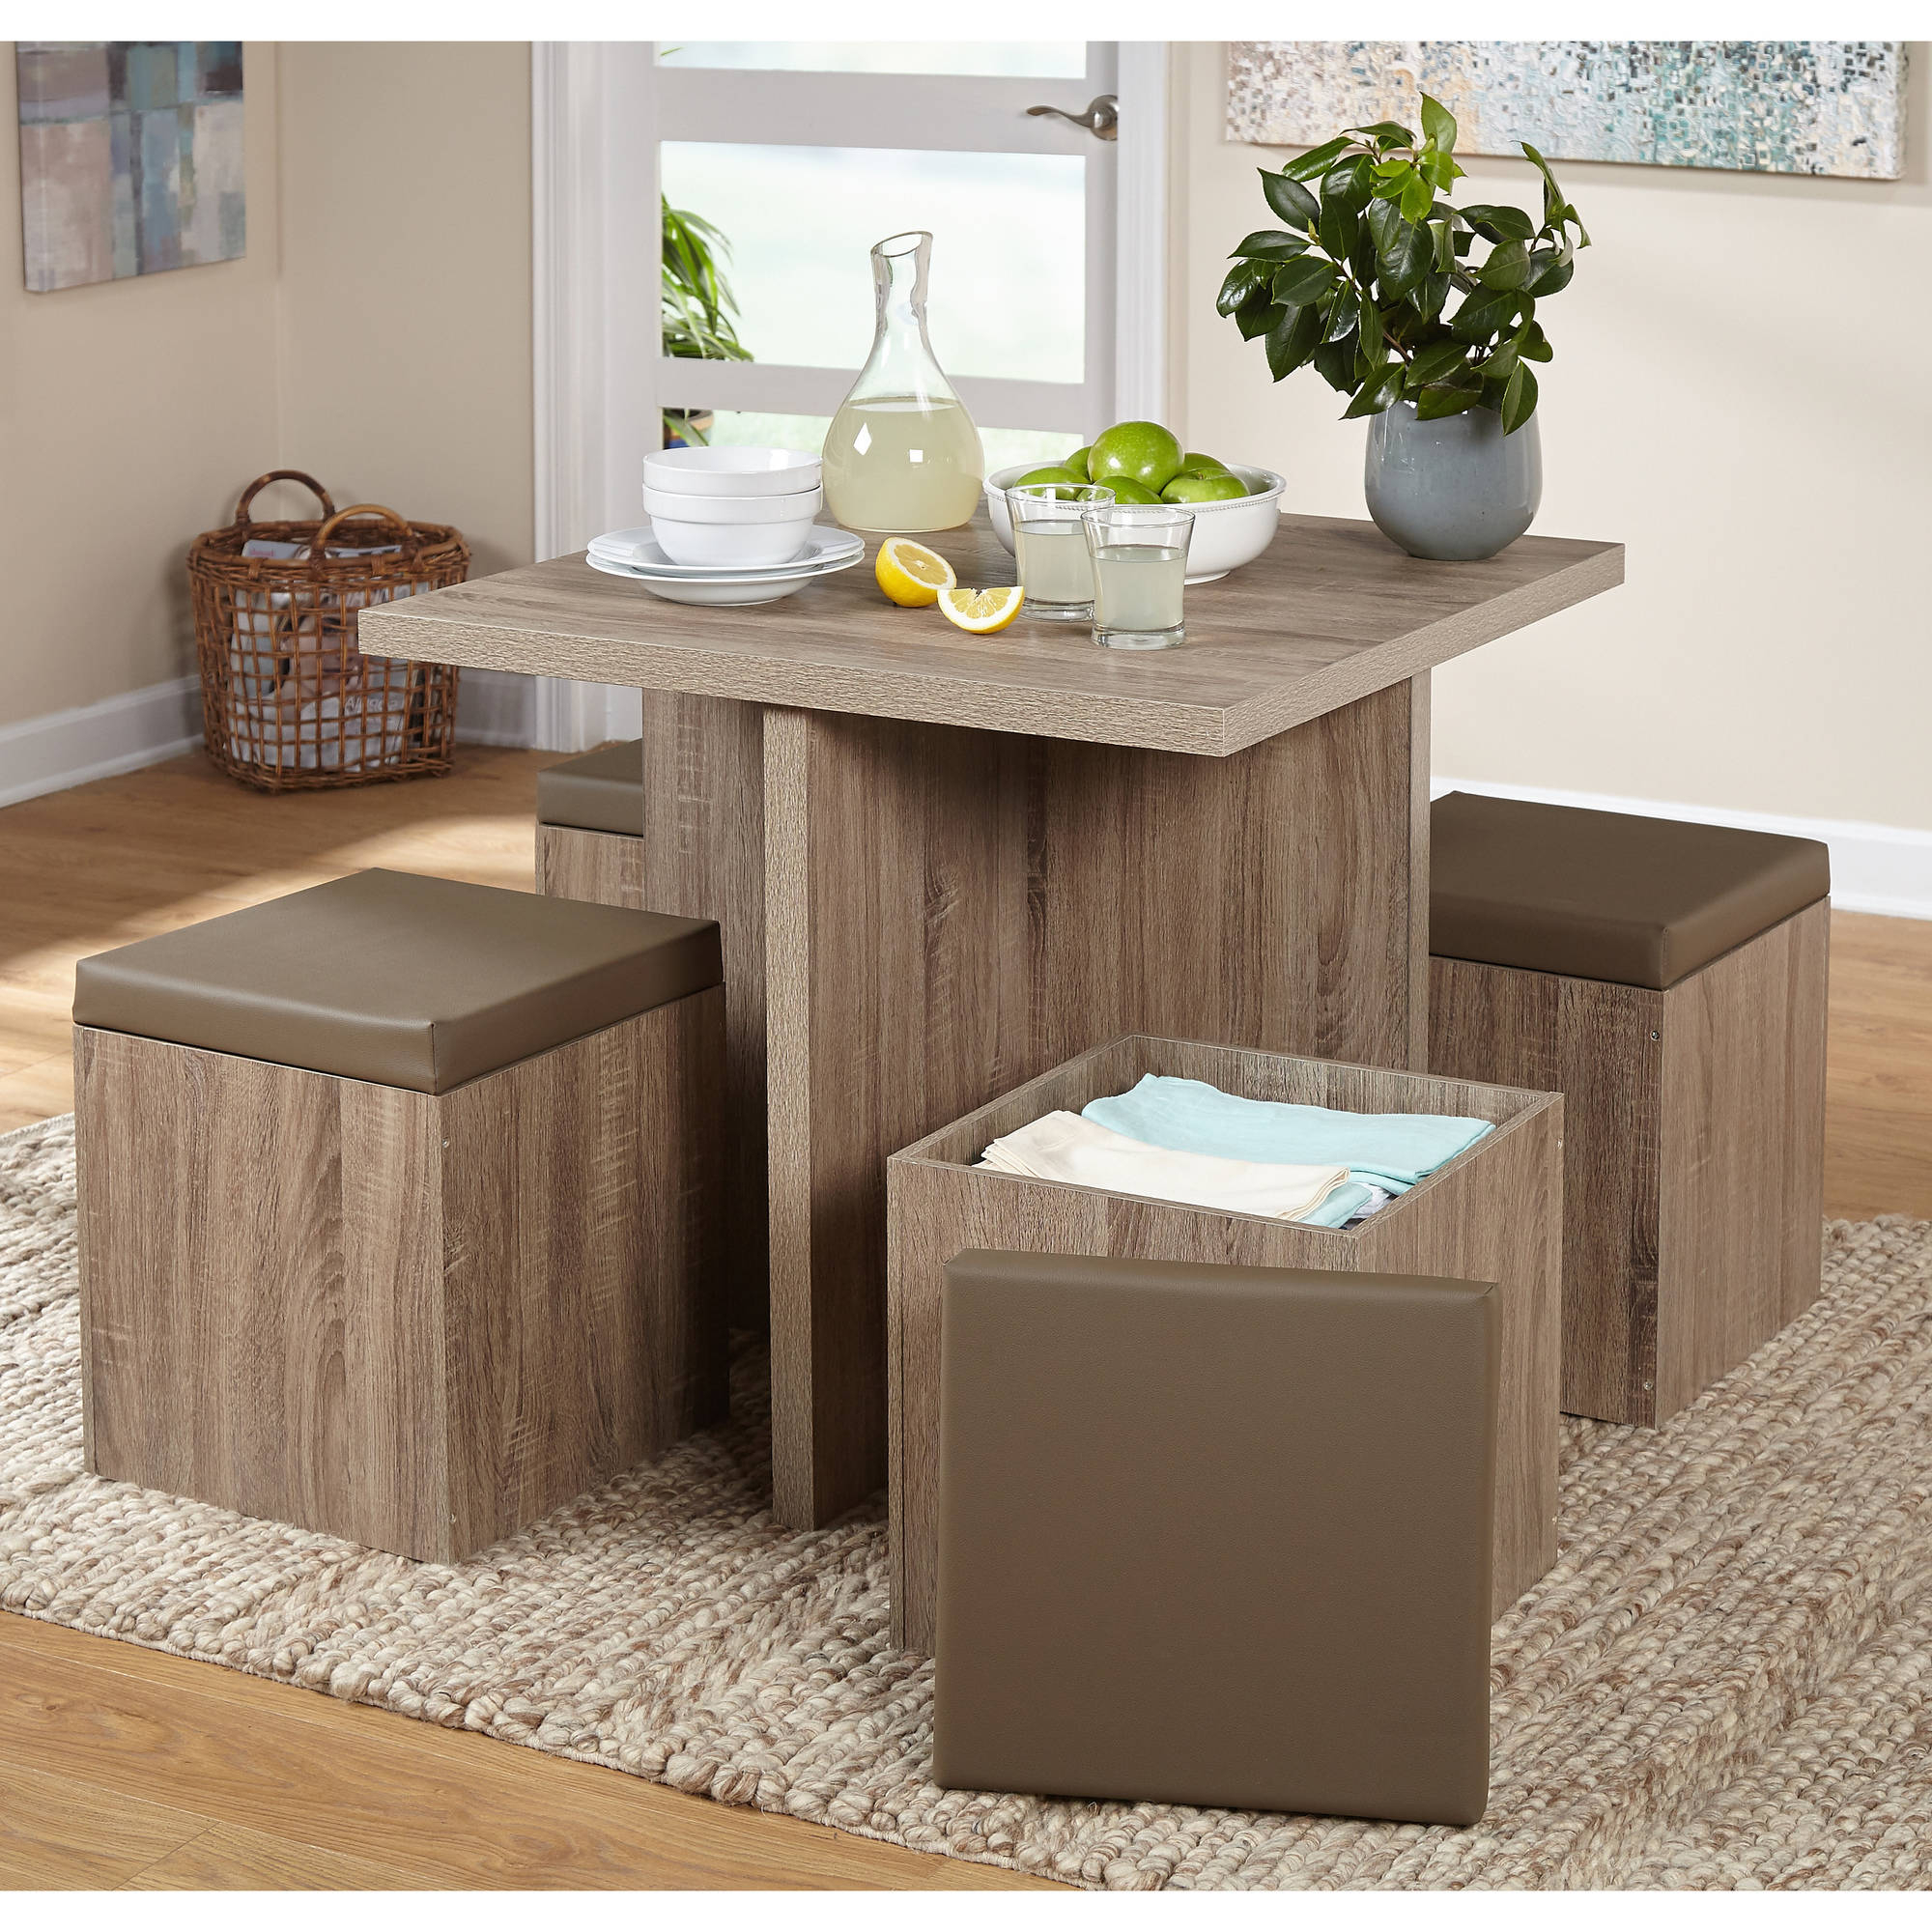 5-Piece Baxter Dining Set With Storage Ottoman, Multiple Colors with Well known Anette 3 Piece Counter Height Dining Sets